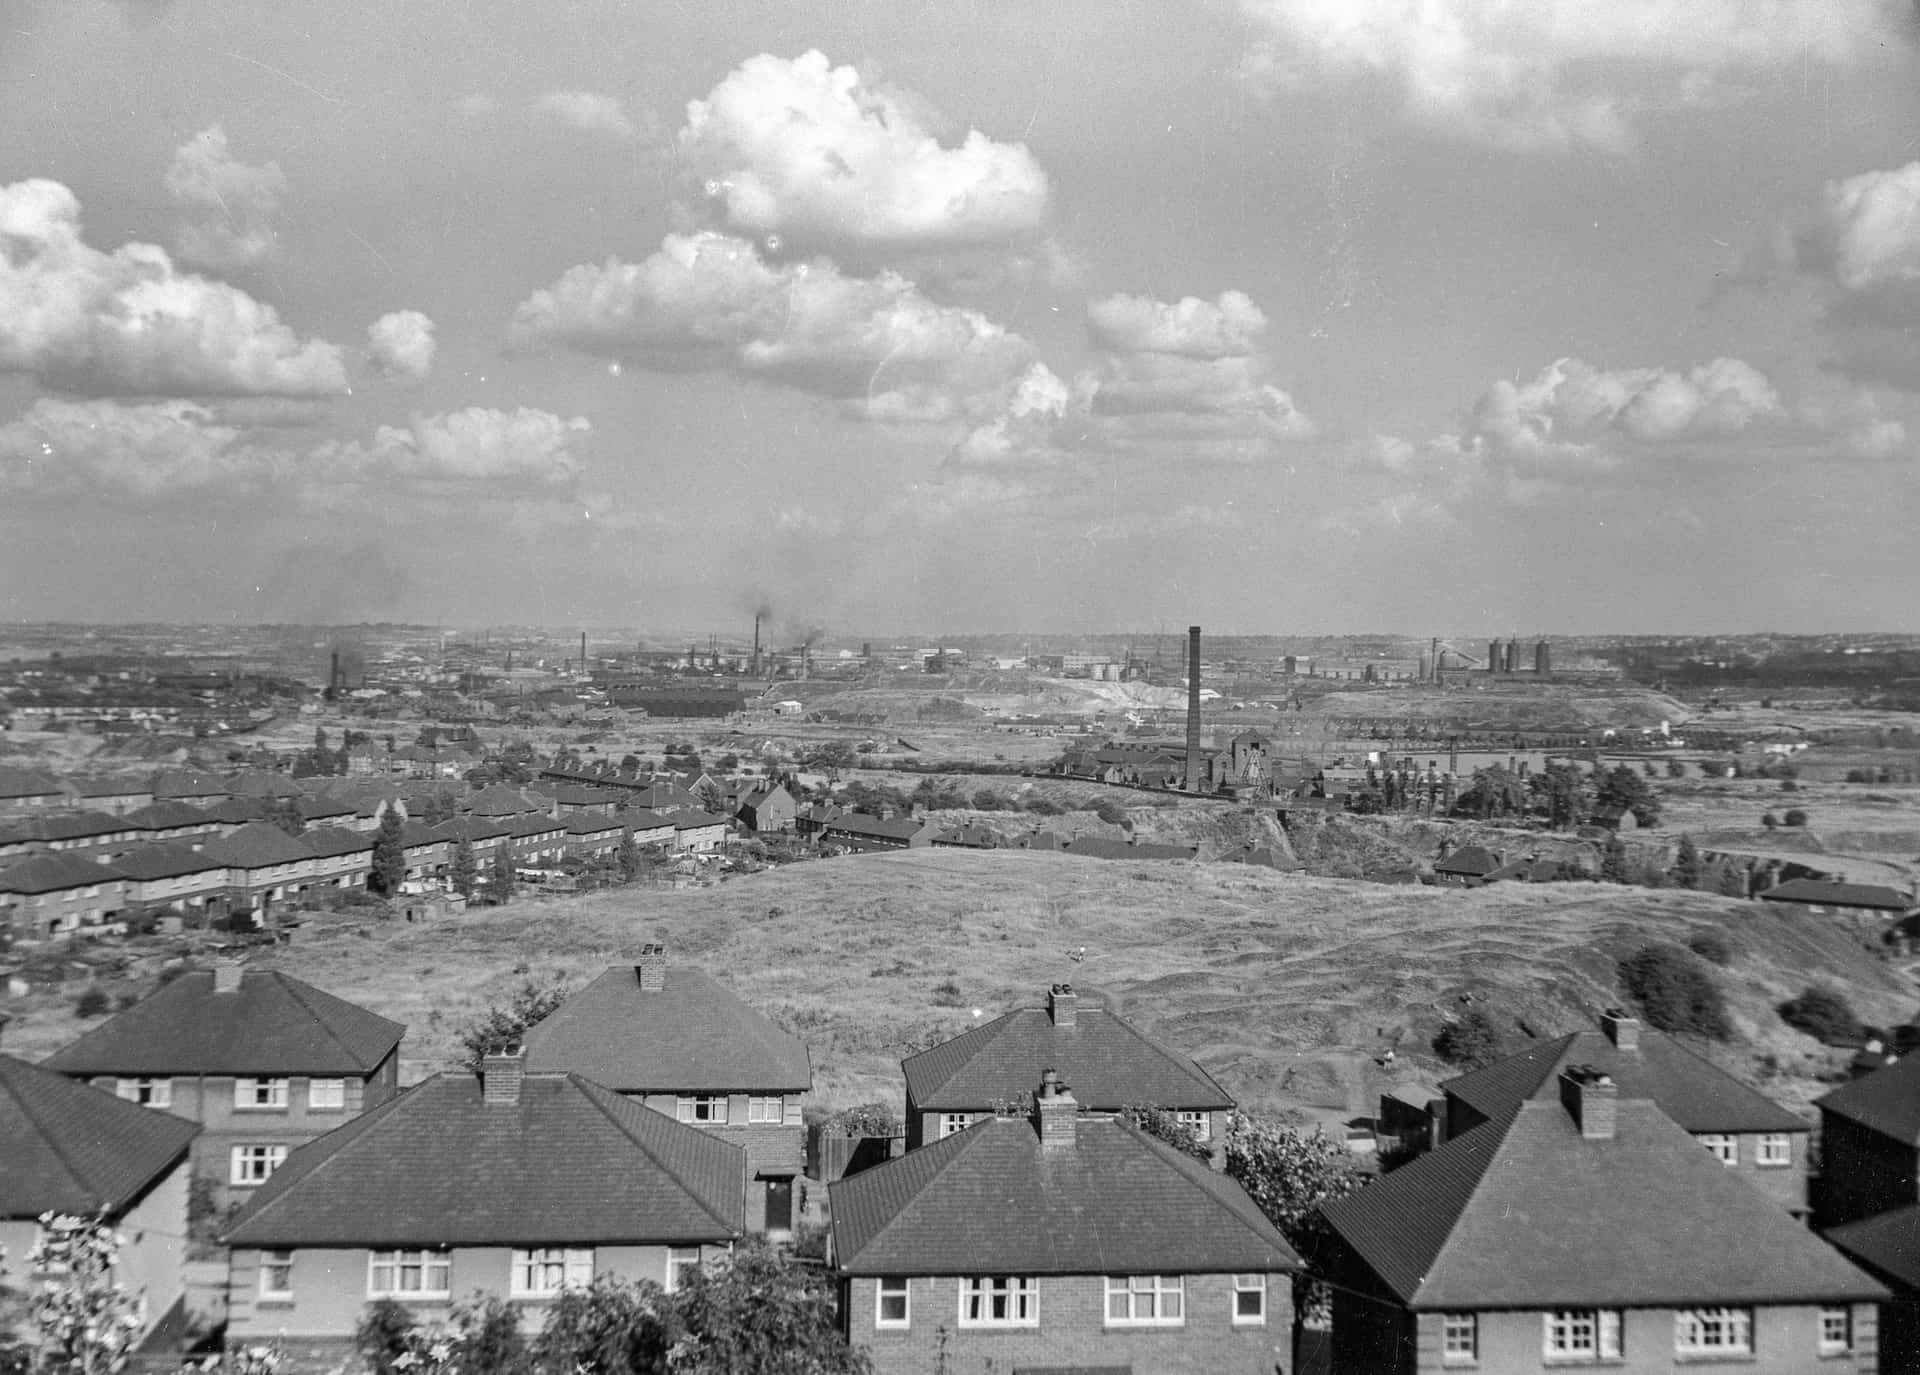 View over Lion Farm and Langley taken from the Rowley Hills, 1950s. From the Jim Rippin collection